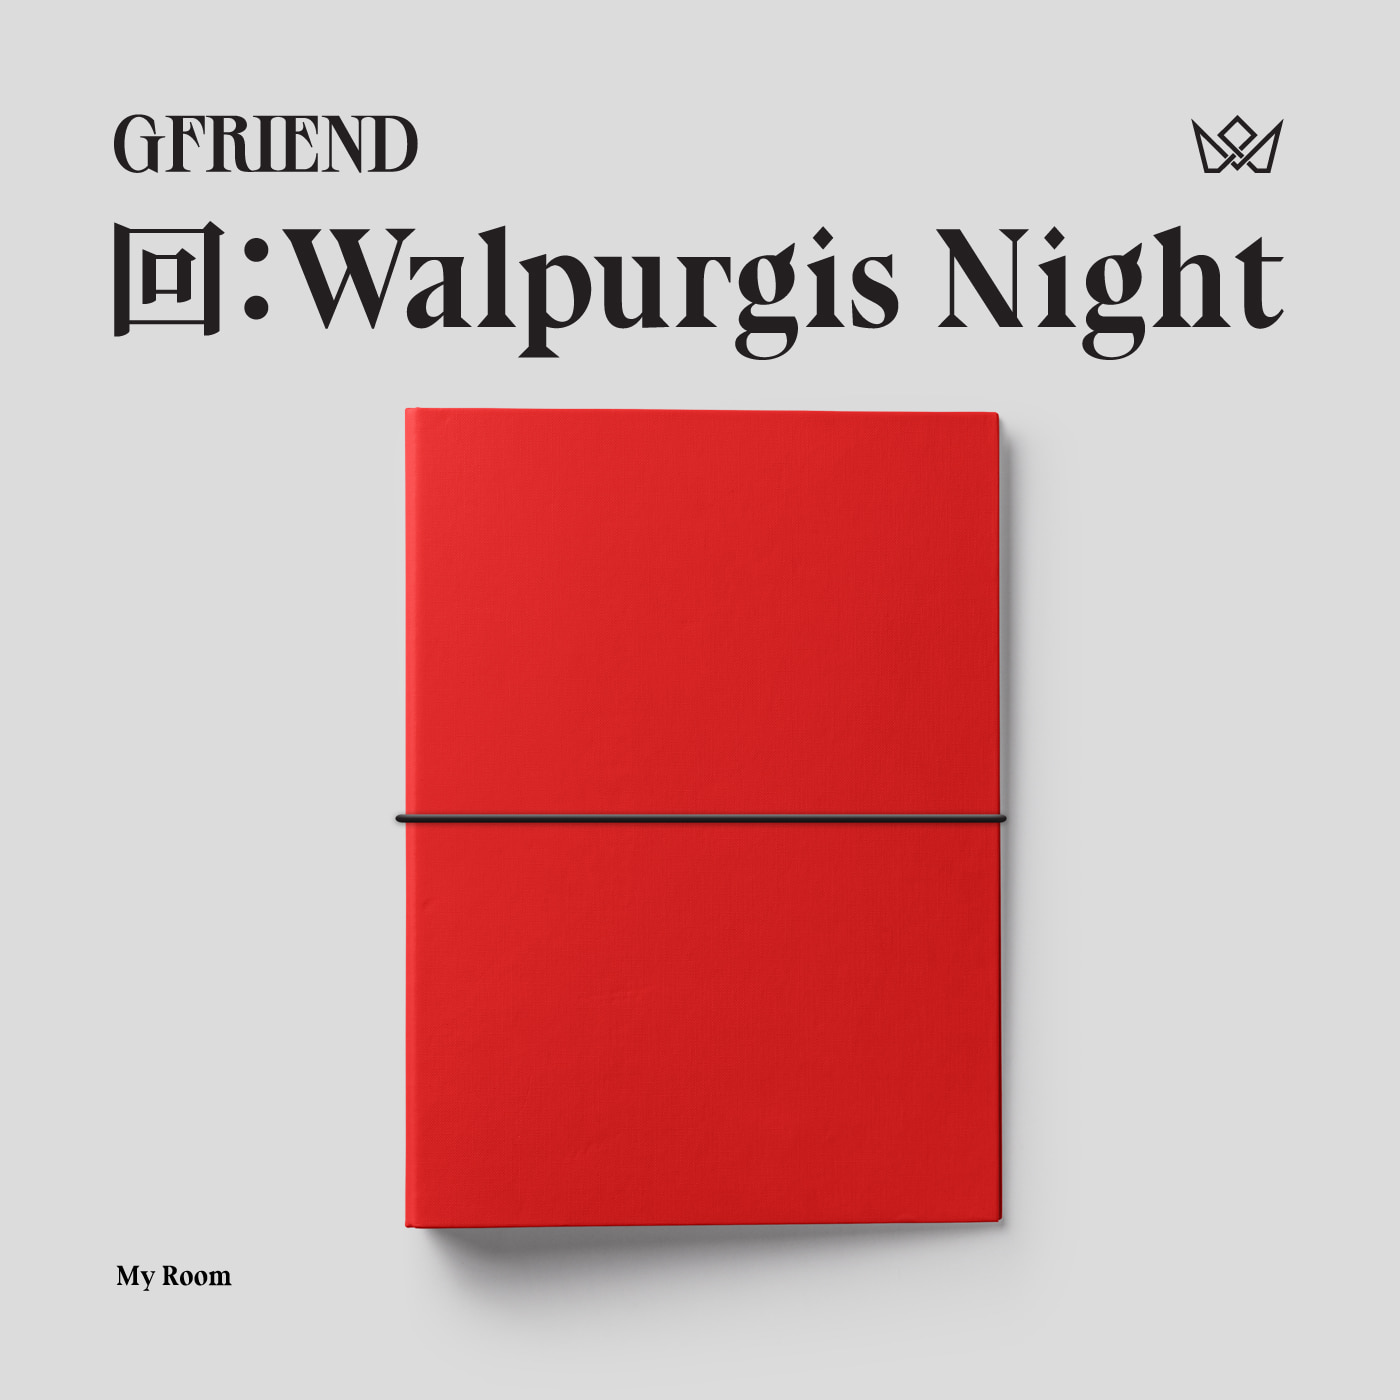 특전 / 여자친구(GFRIEND) - [回:Walpurgis Night] (My Room Ver.)